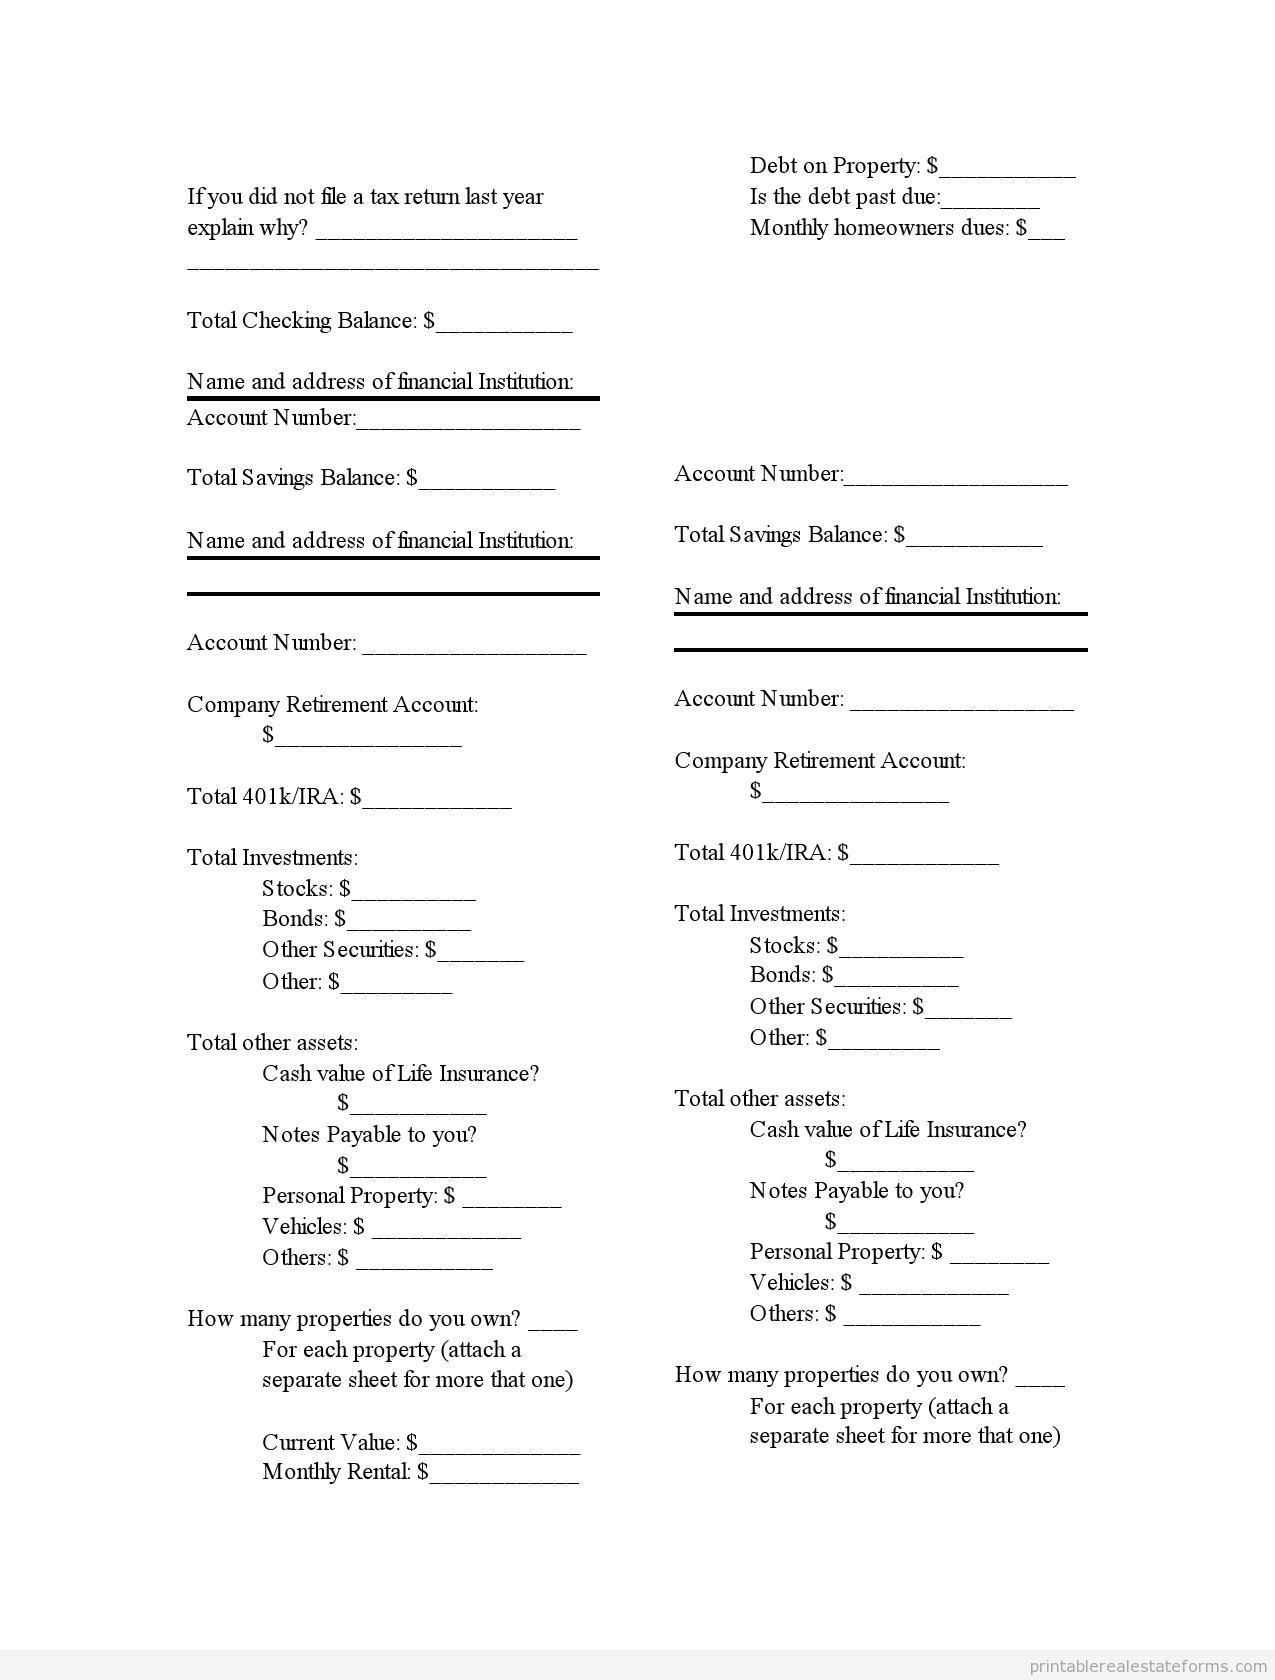 Get High Quality Printable Personal Financial Statement Form Printable.Ready  To Fill Out, Print U0026 Sign.